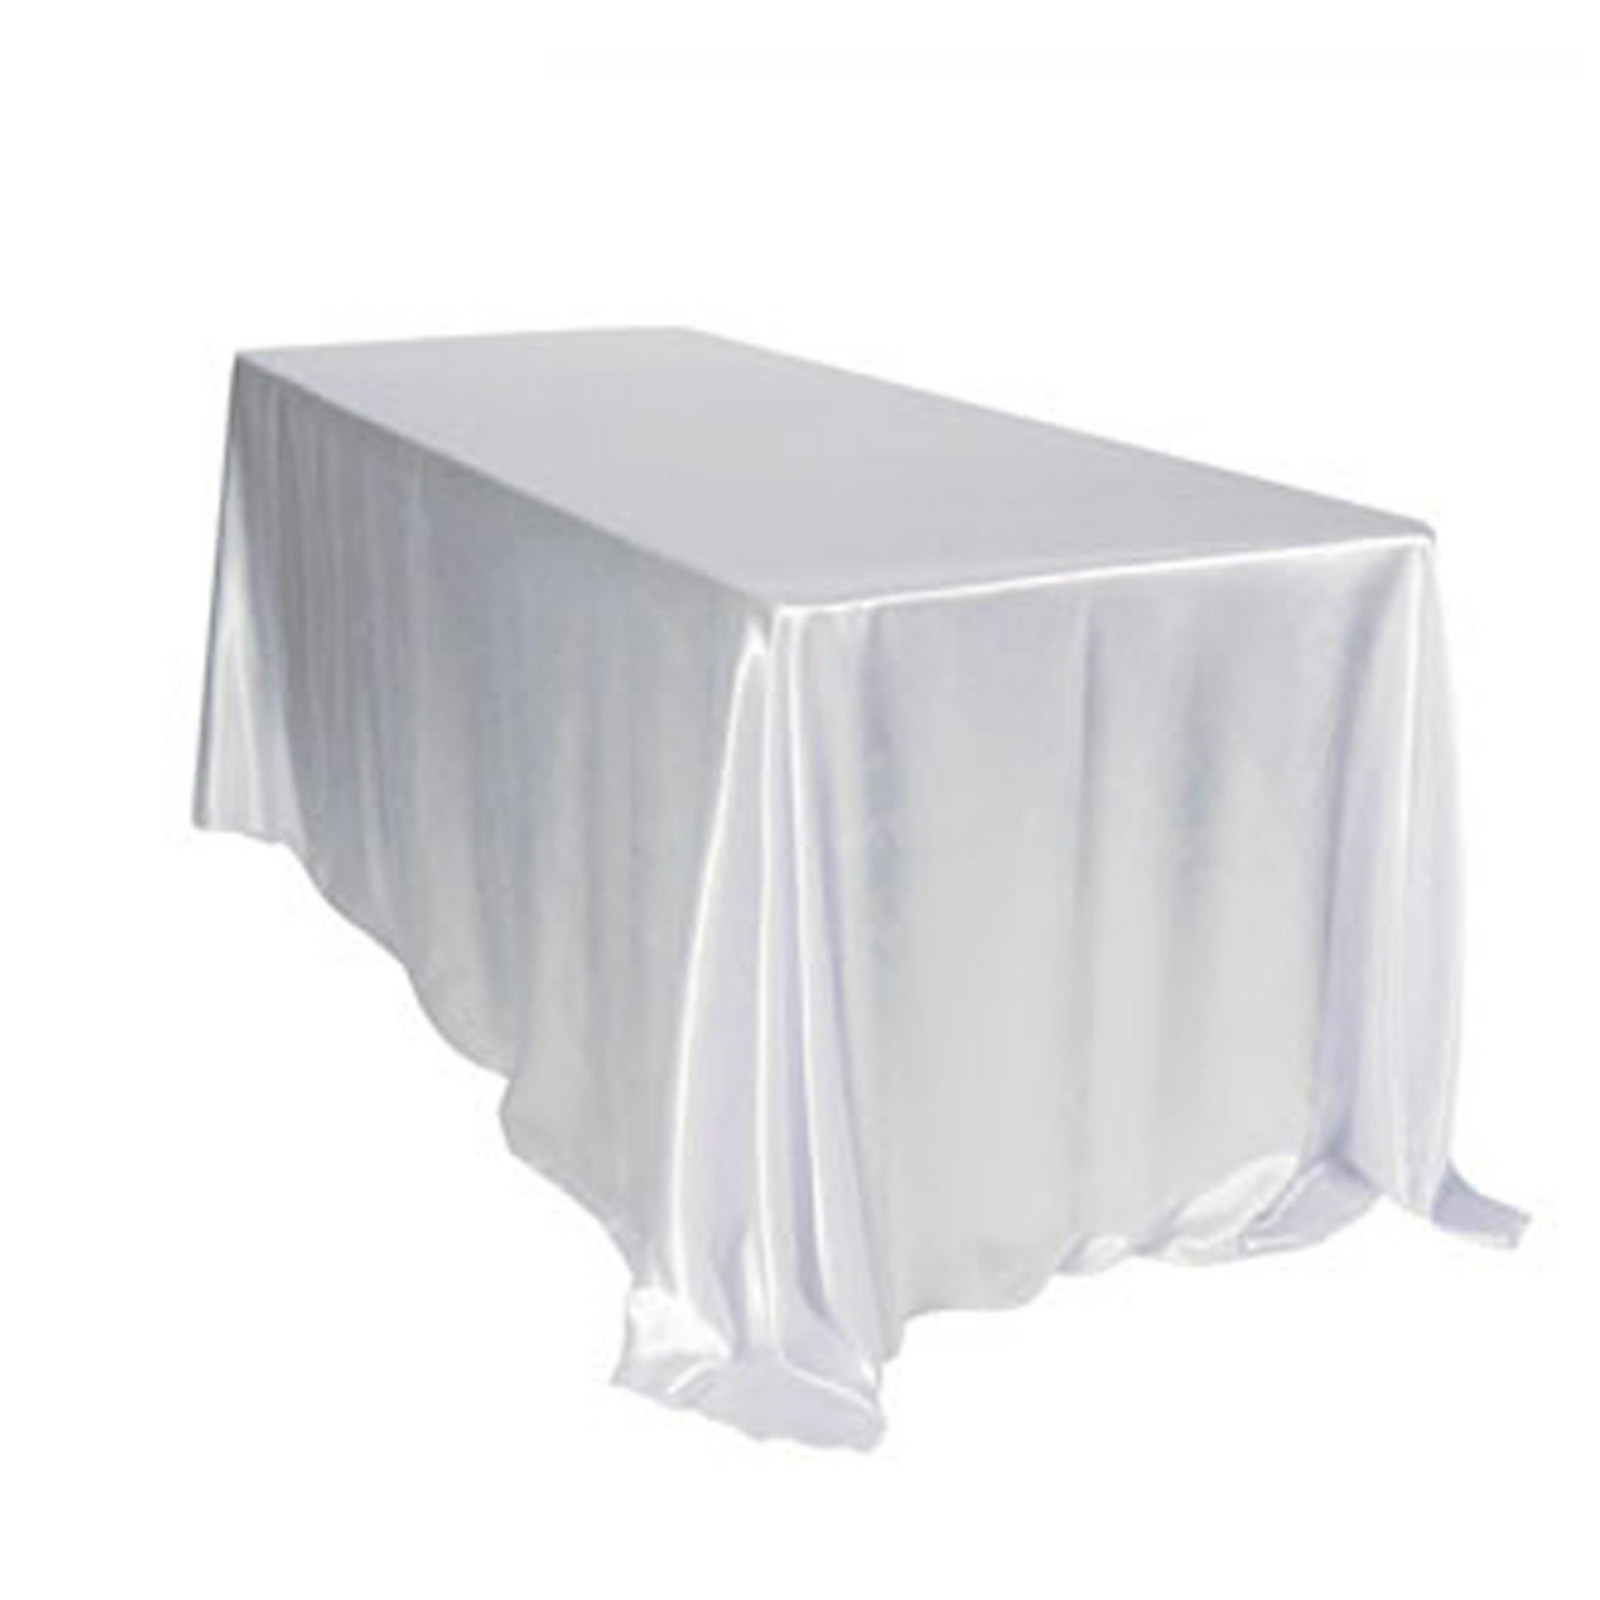 5pcs 228x335cm White/Black Table Cloth Polyester Wedding Table Cloth Rectangular Satin Tablecloth for Wedding Party Decorations-in Tablecloths from Home & Garden    1